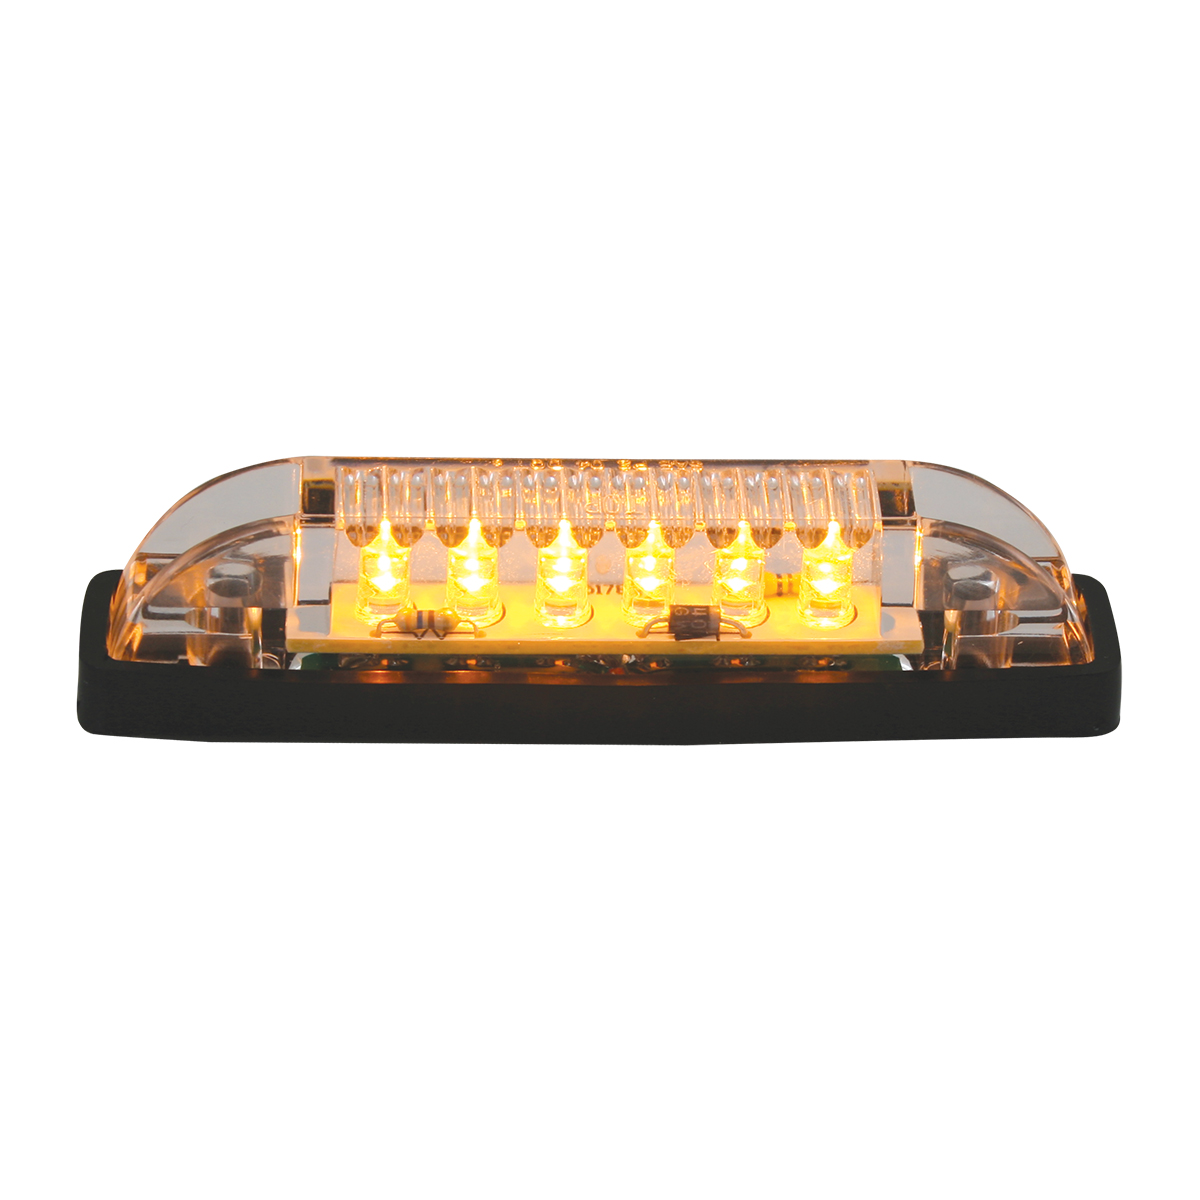 Thin Line Wide Angle - 6 LED Marker Light - (Amber LED with Clear Lens)